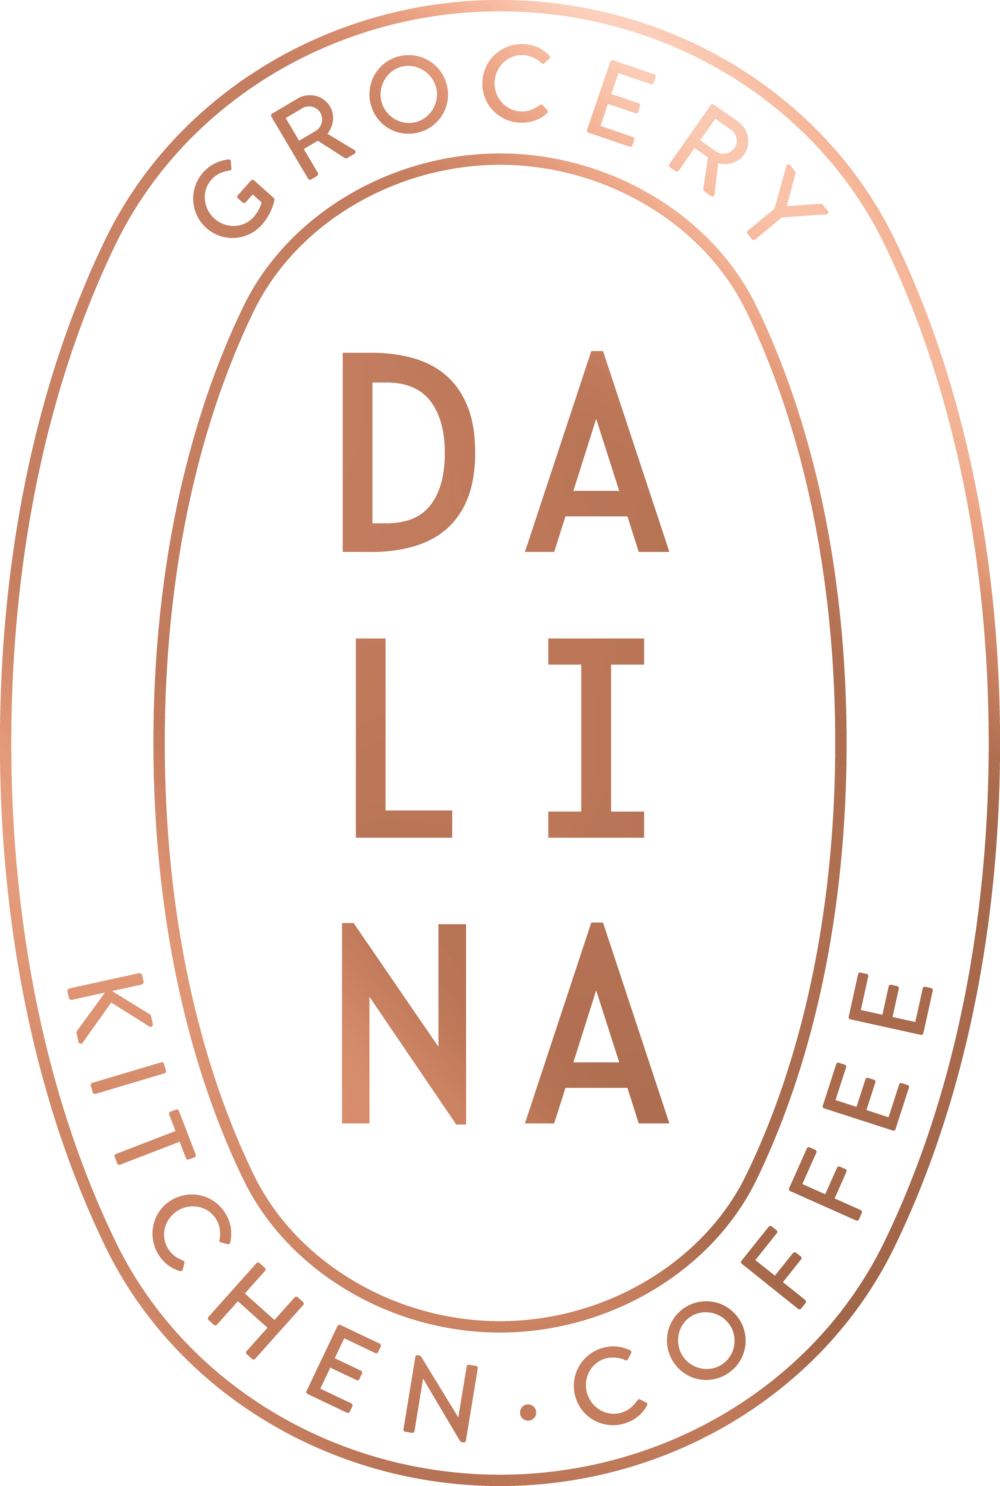 Dalina_StackedLogo_RGB_FAUXCopper.png